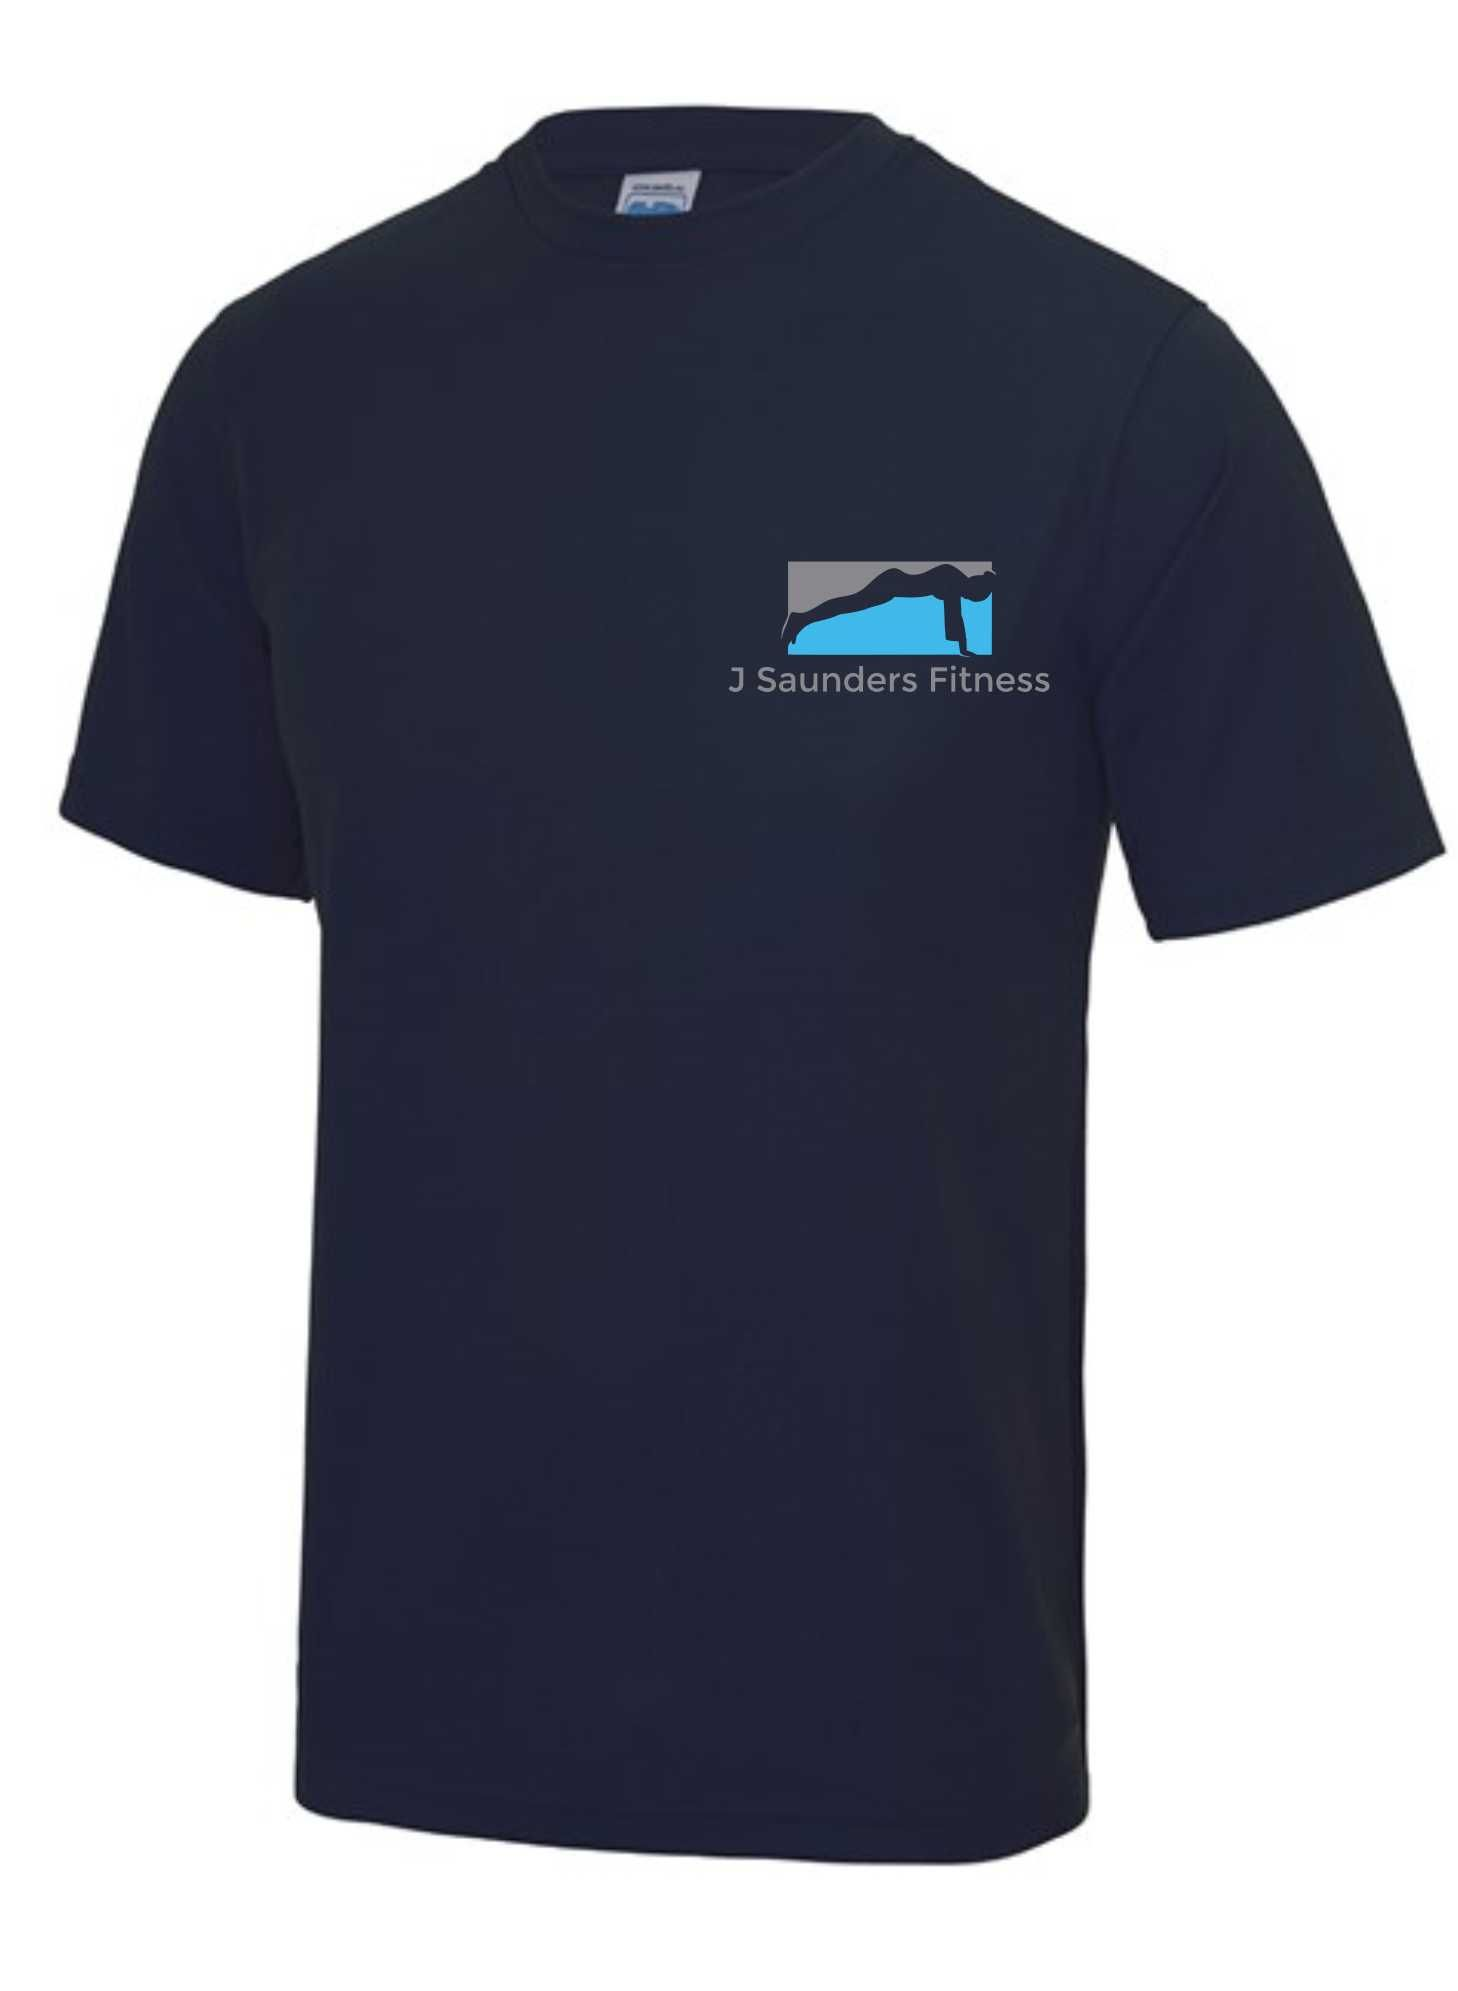 J Saunders Fitness- Men's/Unisex T-Shirt (Front & Back)